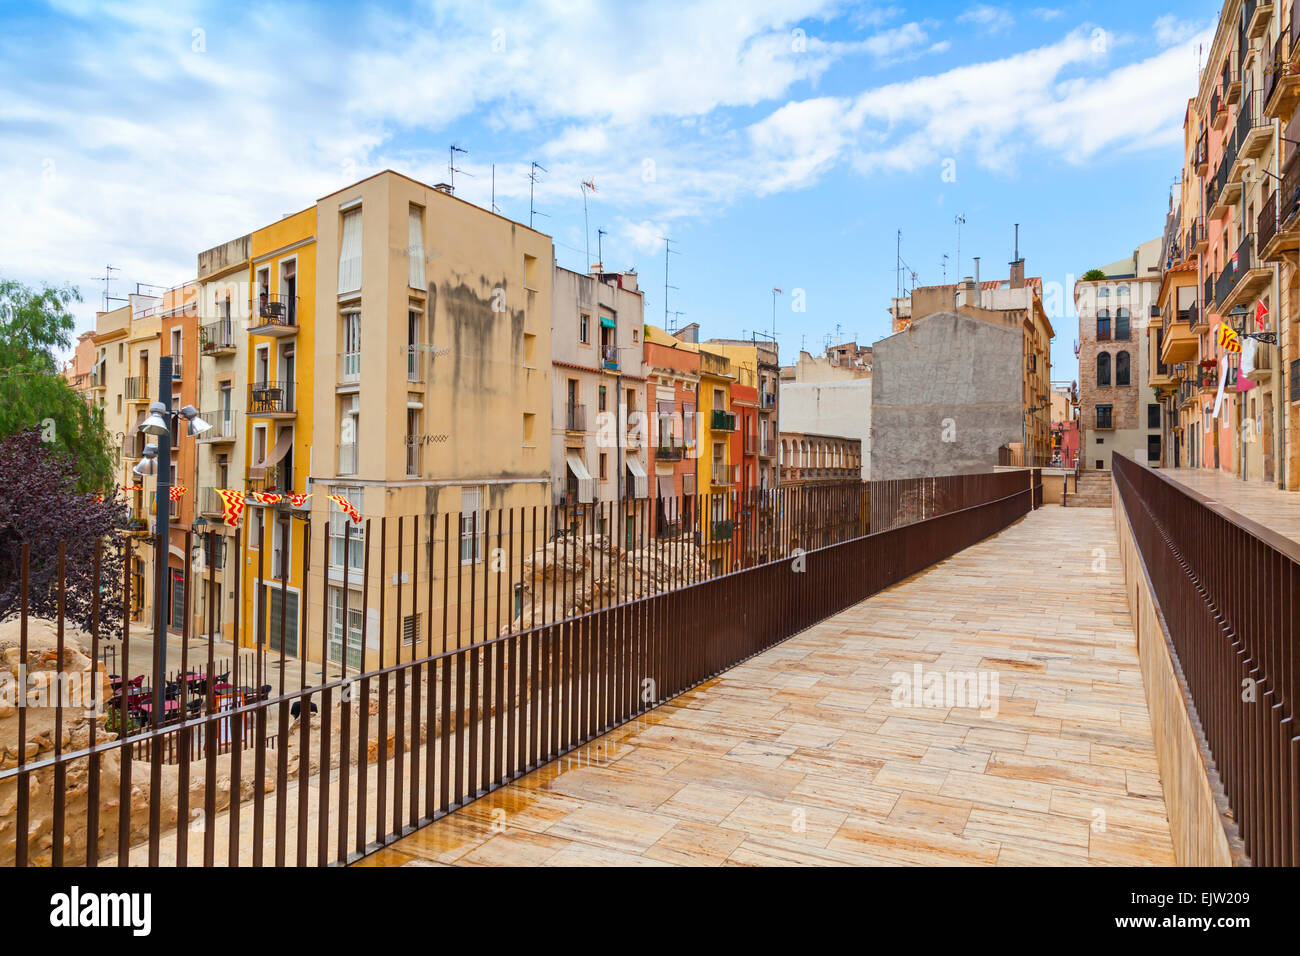 Colorful houses facades near pedestrian walking lane, street view of Tarragona, Spain - Stock Image